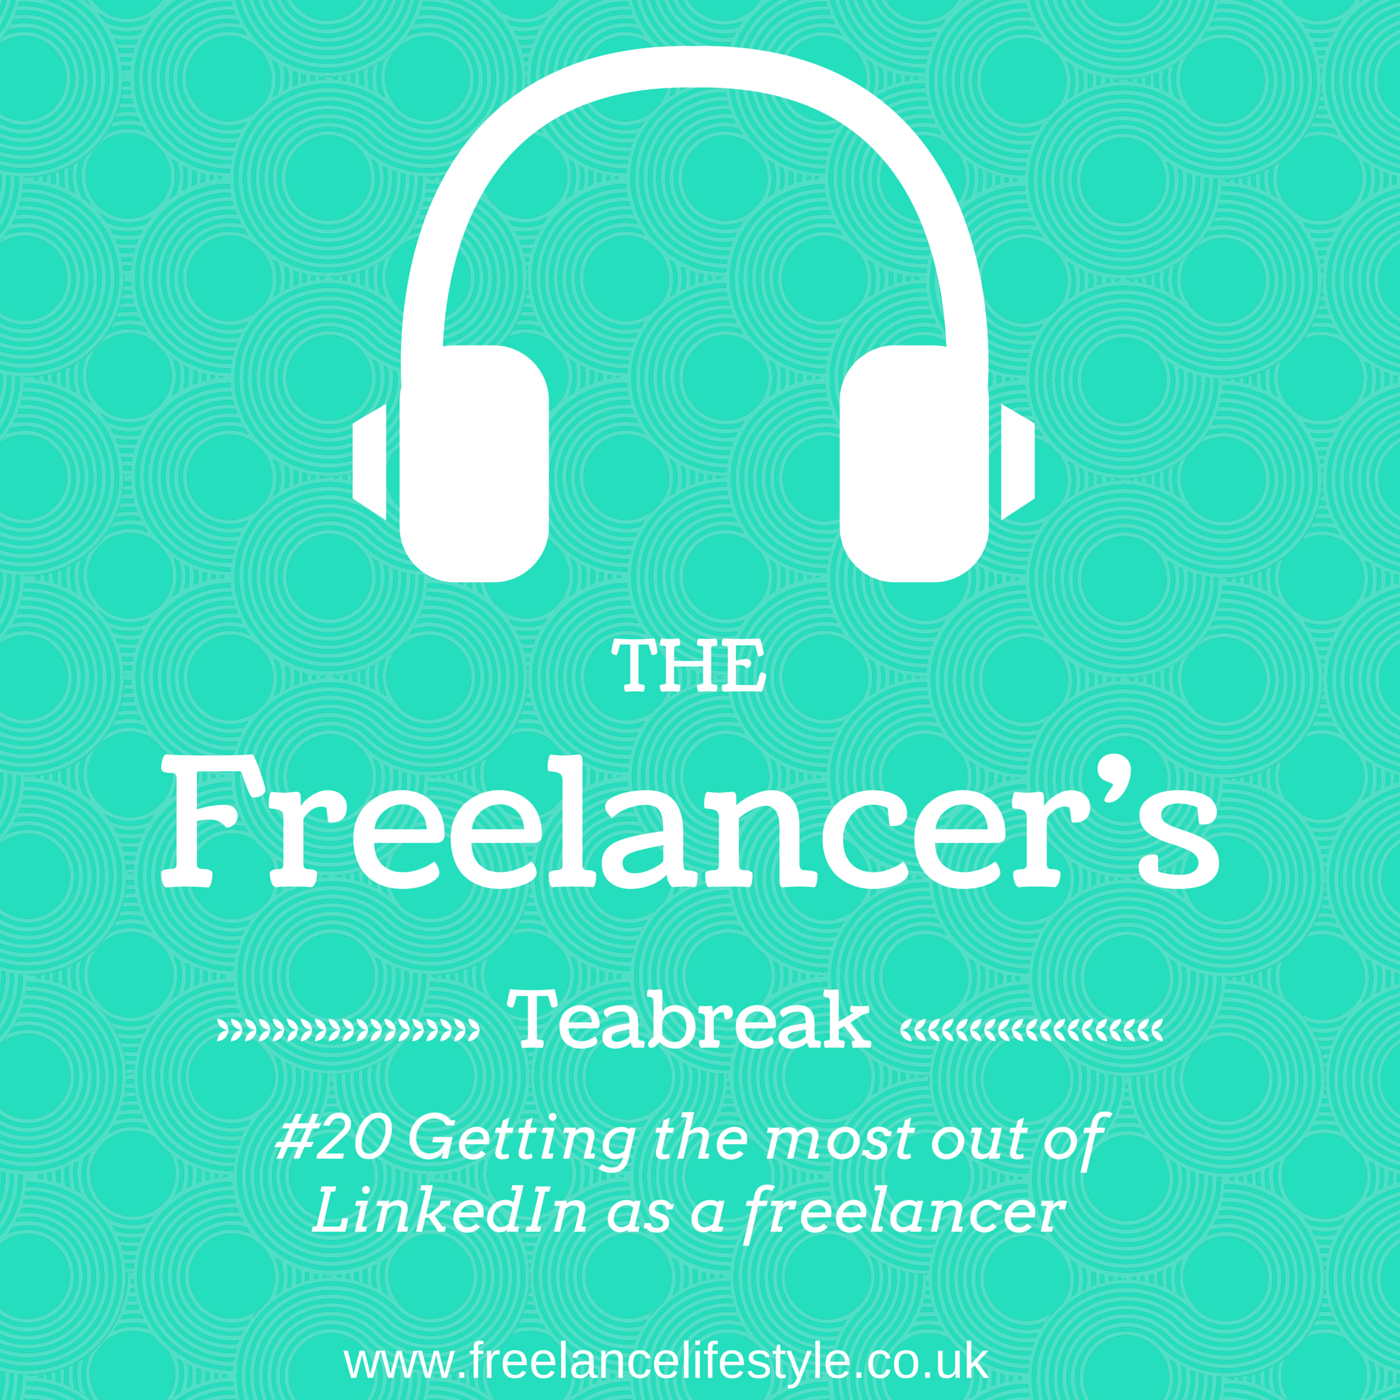 The Freelancer's Teabreak #20: Are you getting the most out of LinkedIn?